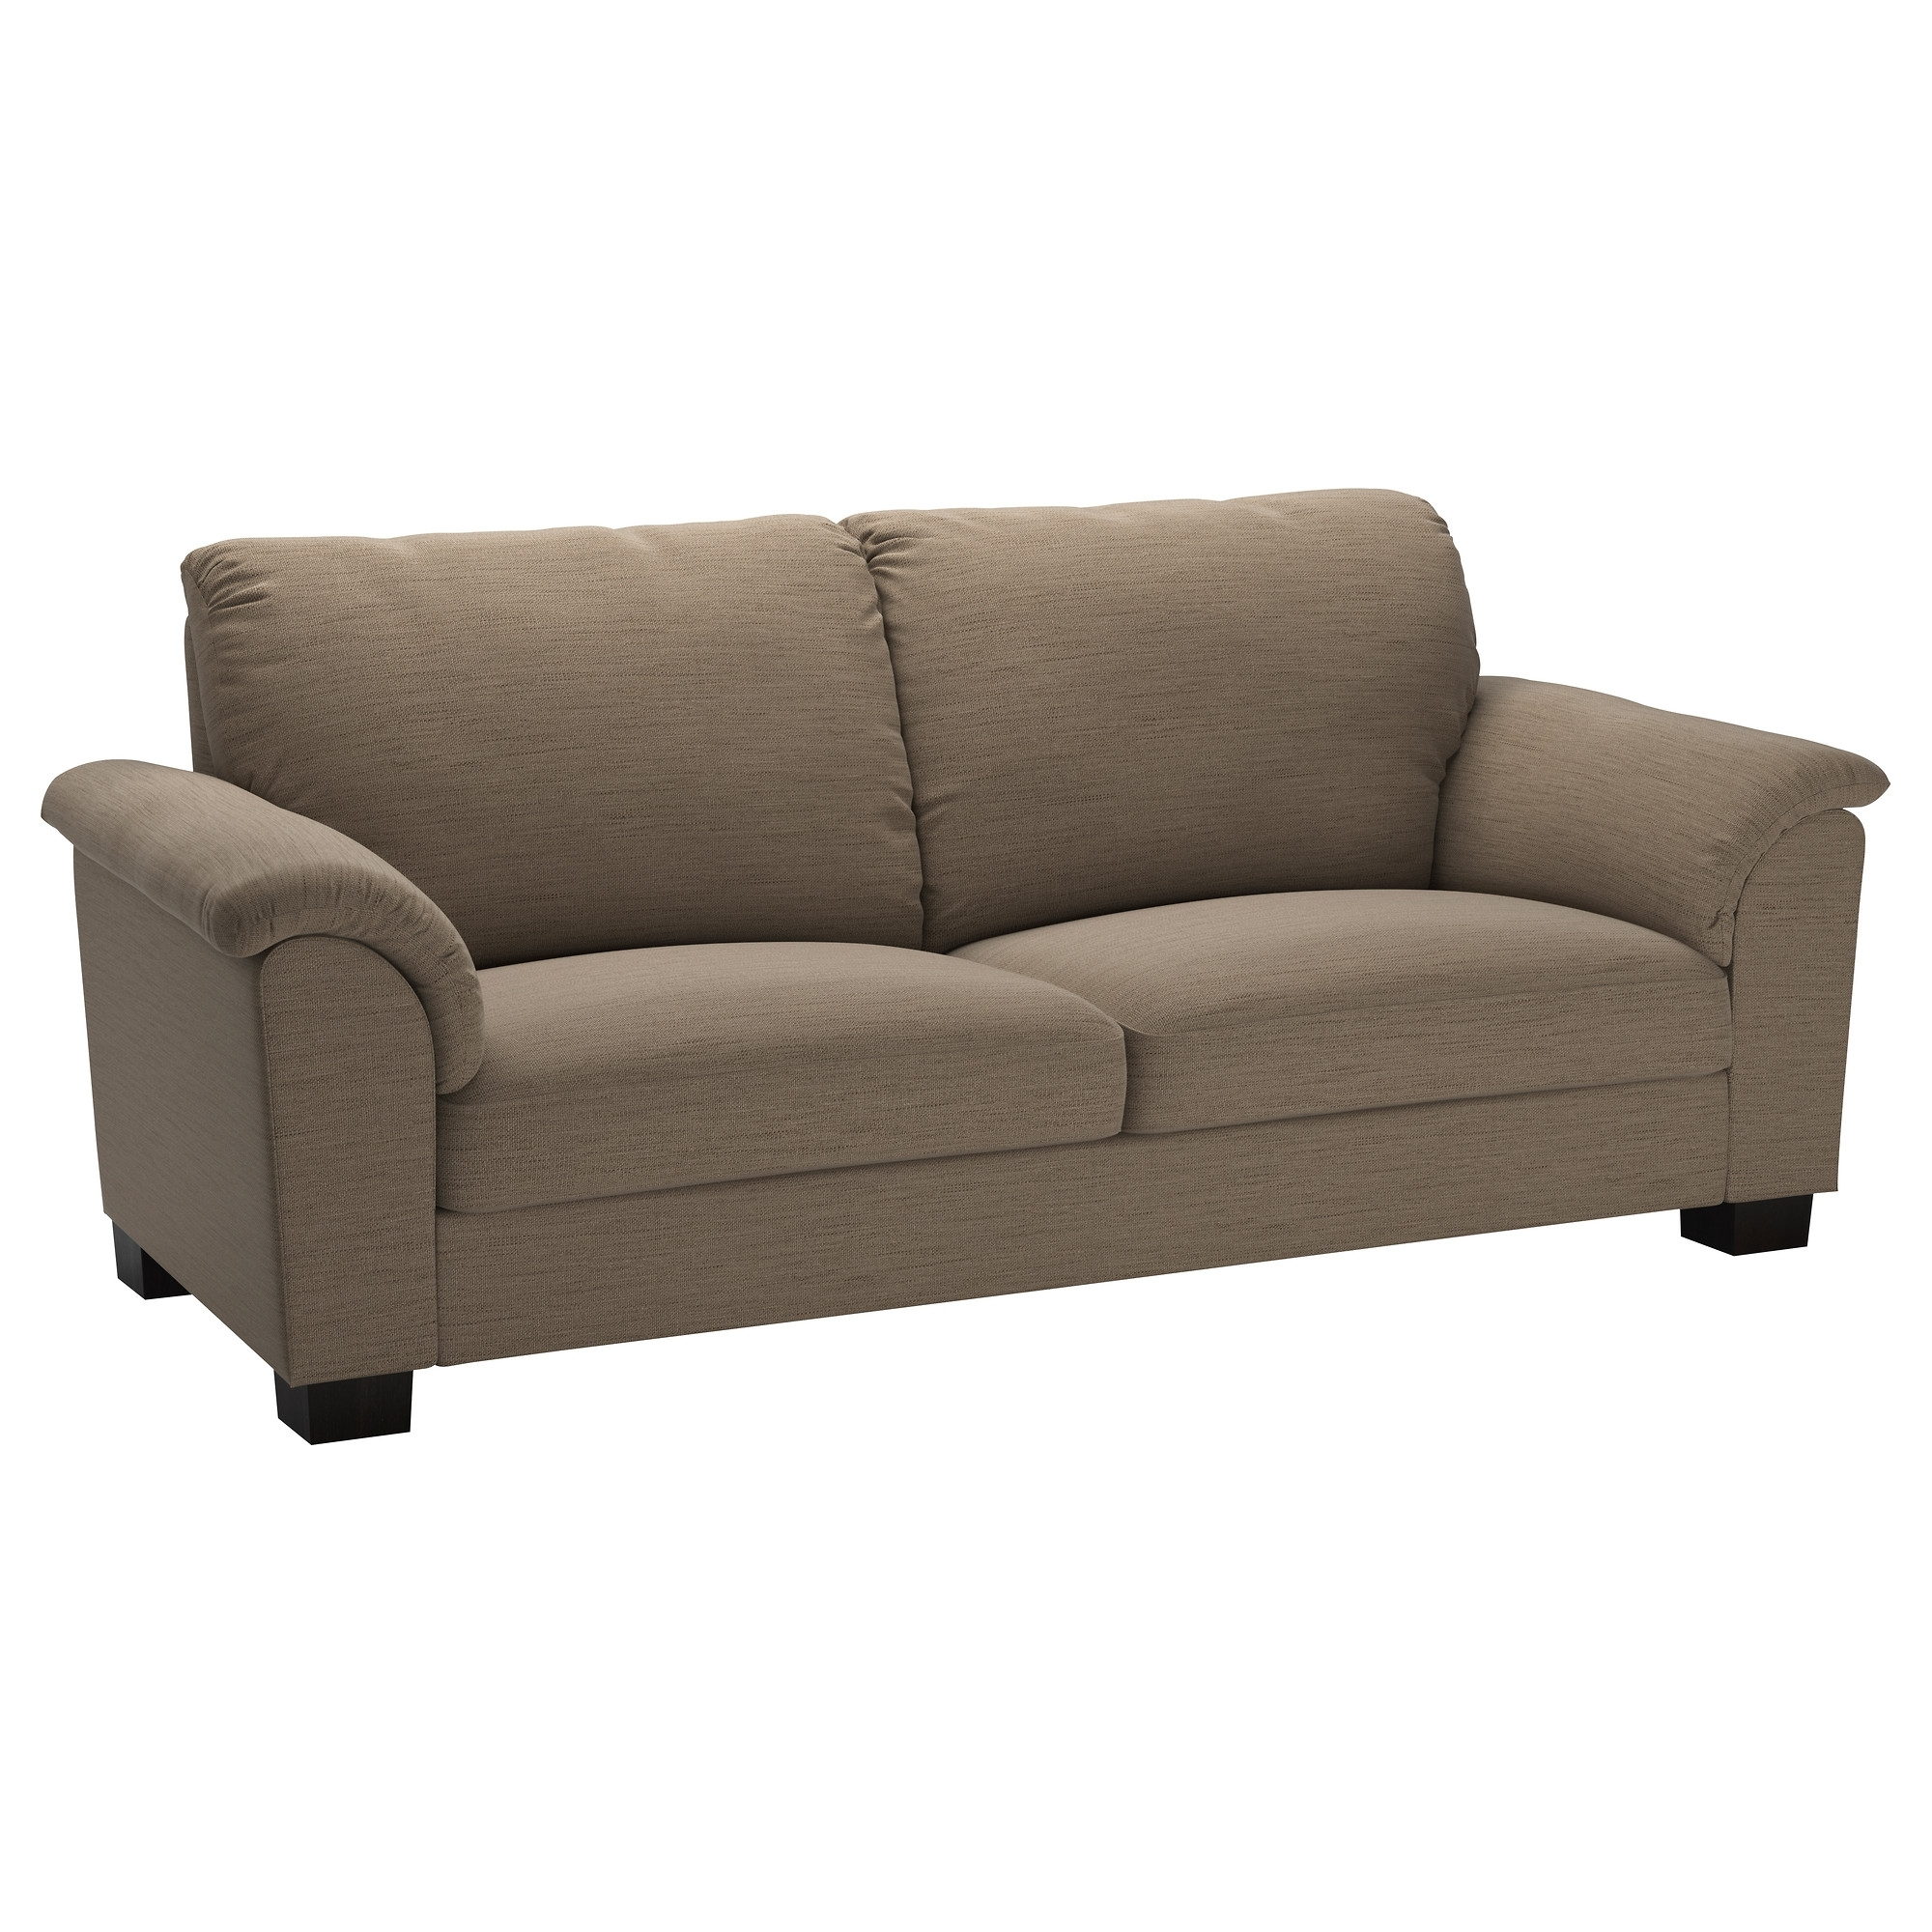 Most Recent Sofas With High Backs In Tidafors Sofa – Dansbo Medium Brown – Ikea (View 10 of 20)